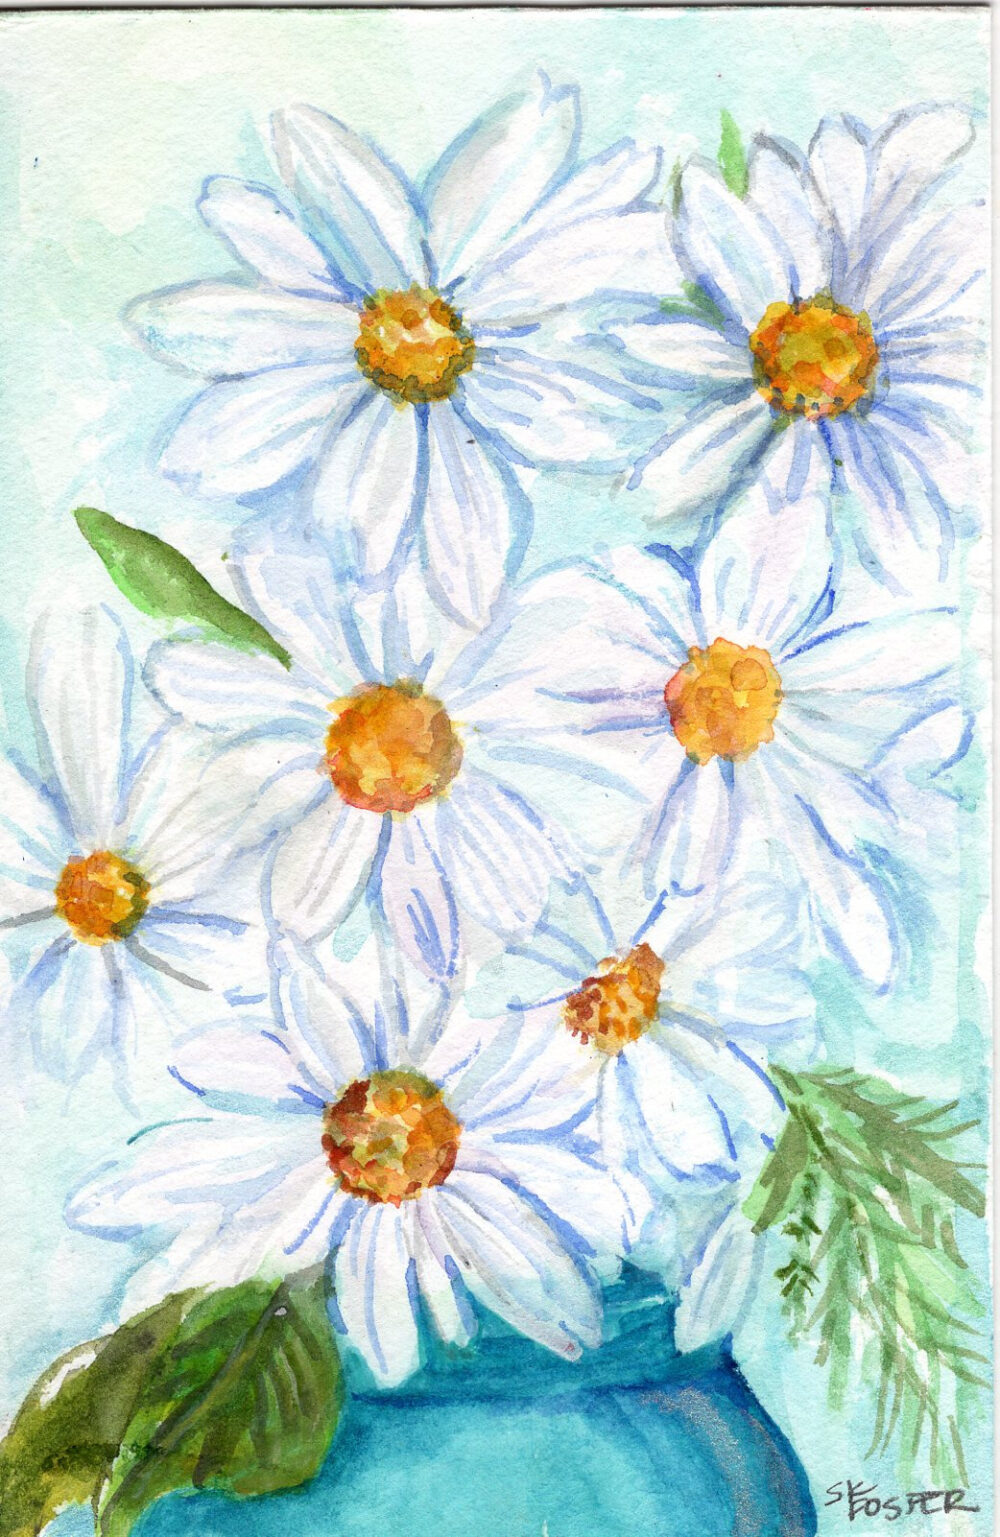 Daisies Original Watercolor Painting in Mason Jar Art, Small Floral 4 X 6 Home Decor, Mother's Day Gift